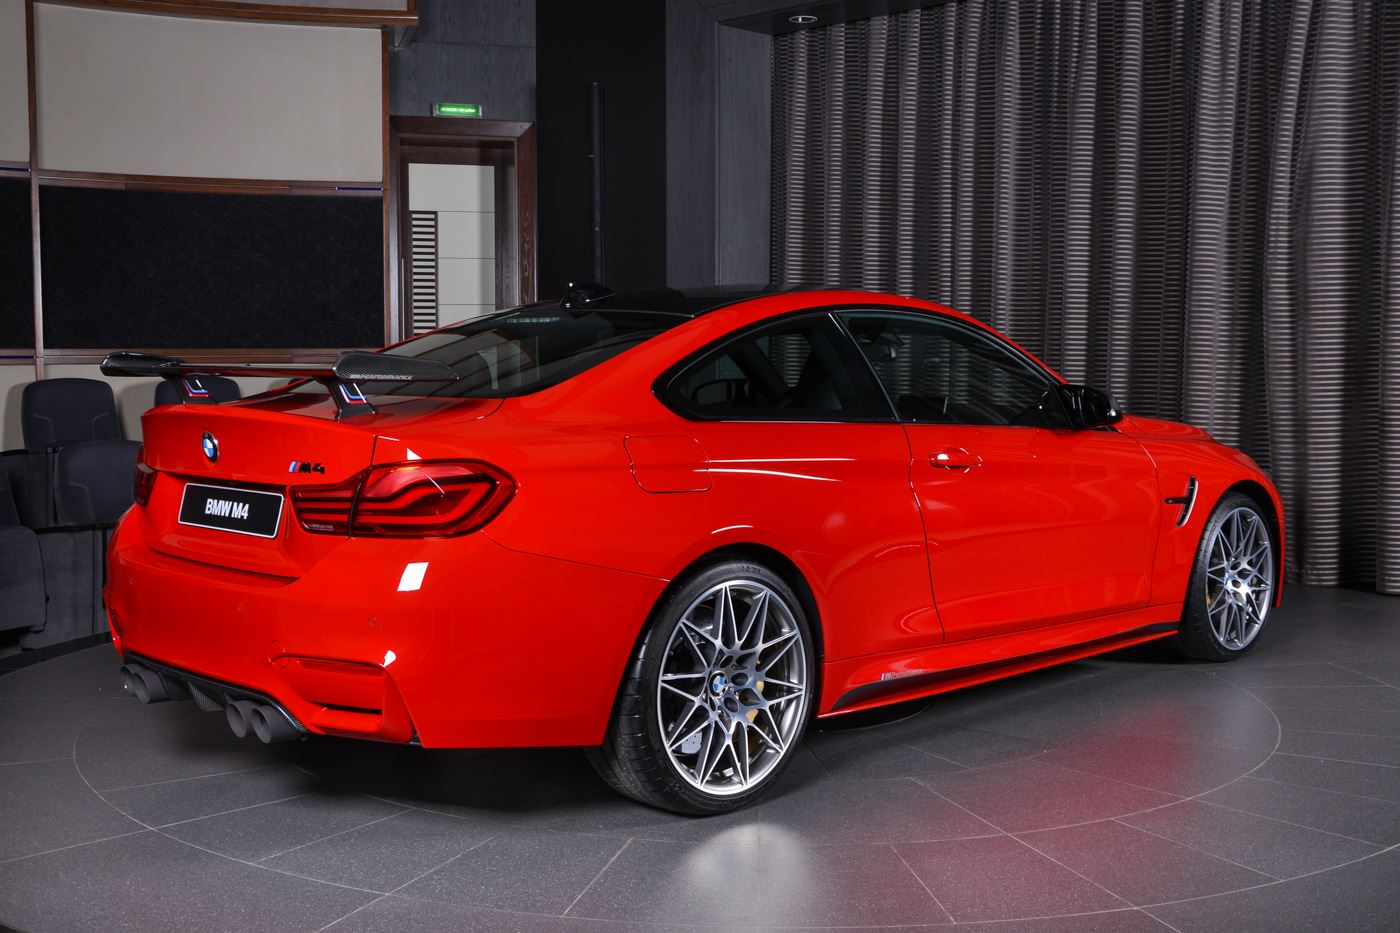 Ferrari Red Bmw M4 Oozing Sex Appeal With M Performance